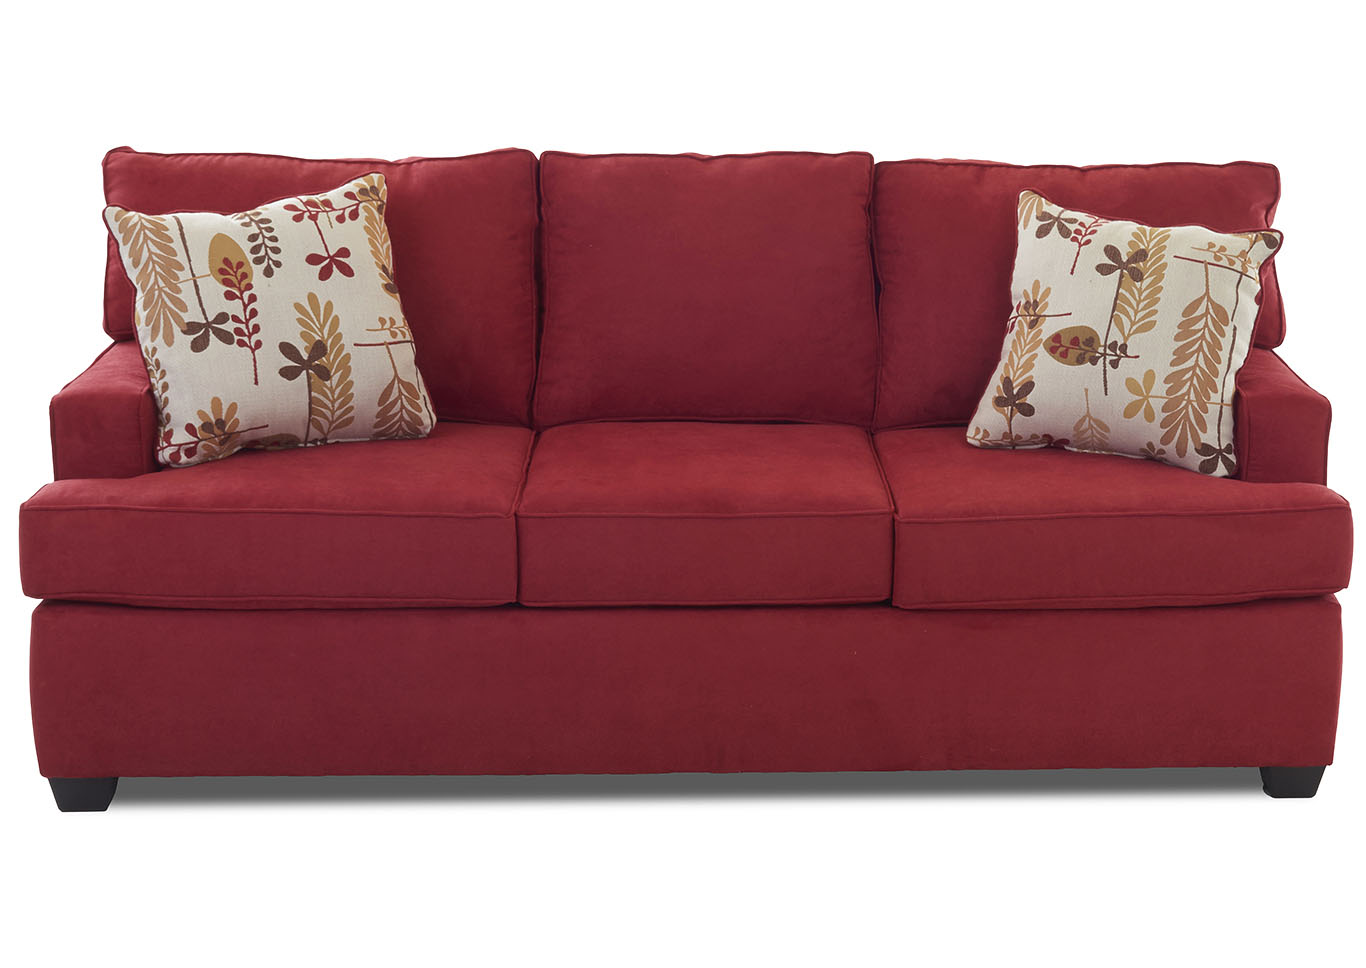 Hornell Furniture Outlet Cruze Red Stationary Fabric Sofa